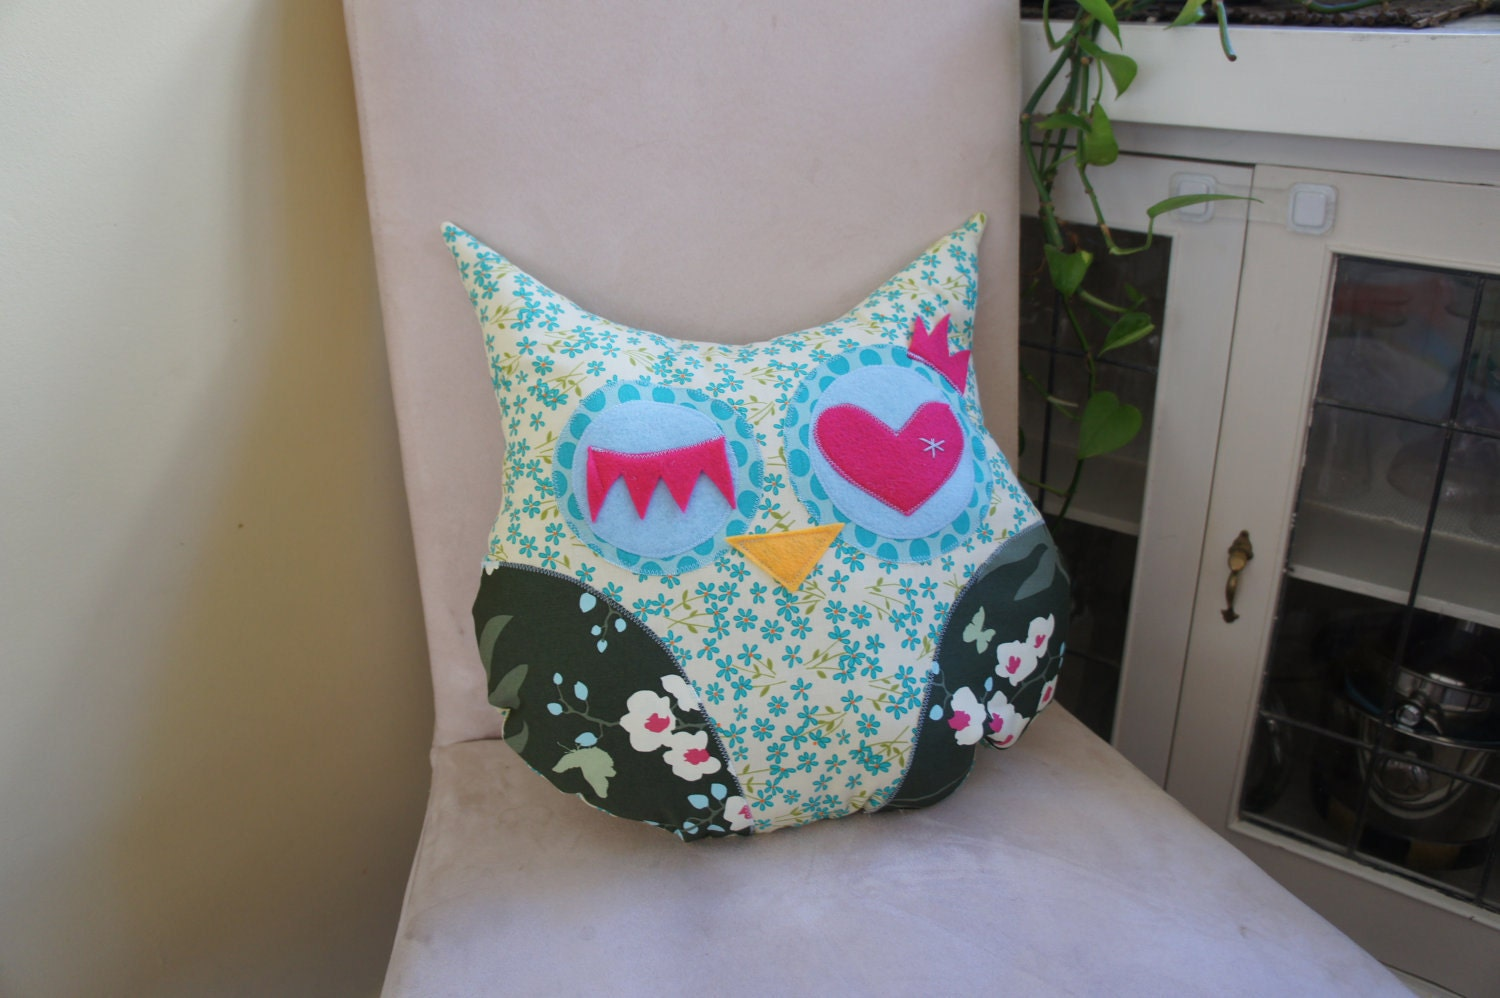 Large Lucky Owl Decorative Pillow -  blue flowers - Ready to ship